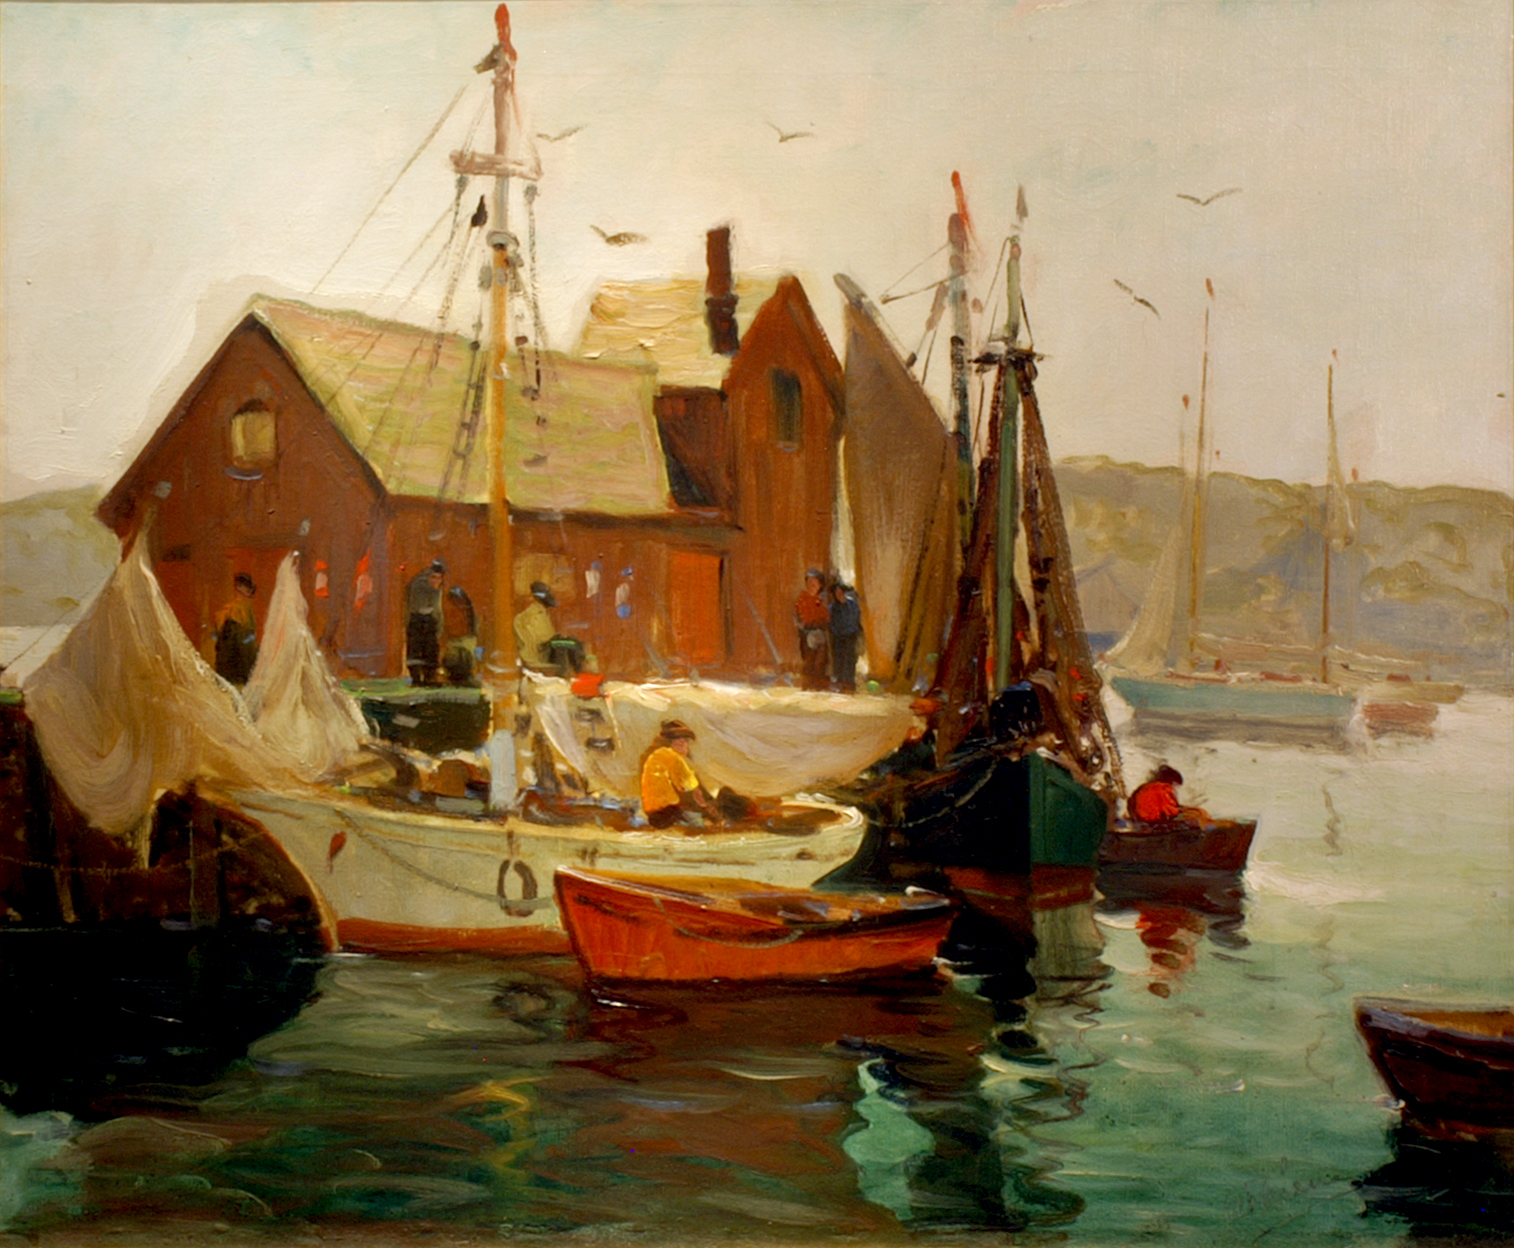 Anthony Thieme, Pleasant Morning, Rockport. Courtesy of Pauline Pocock Antiques, Inc.